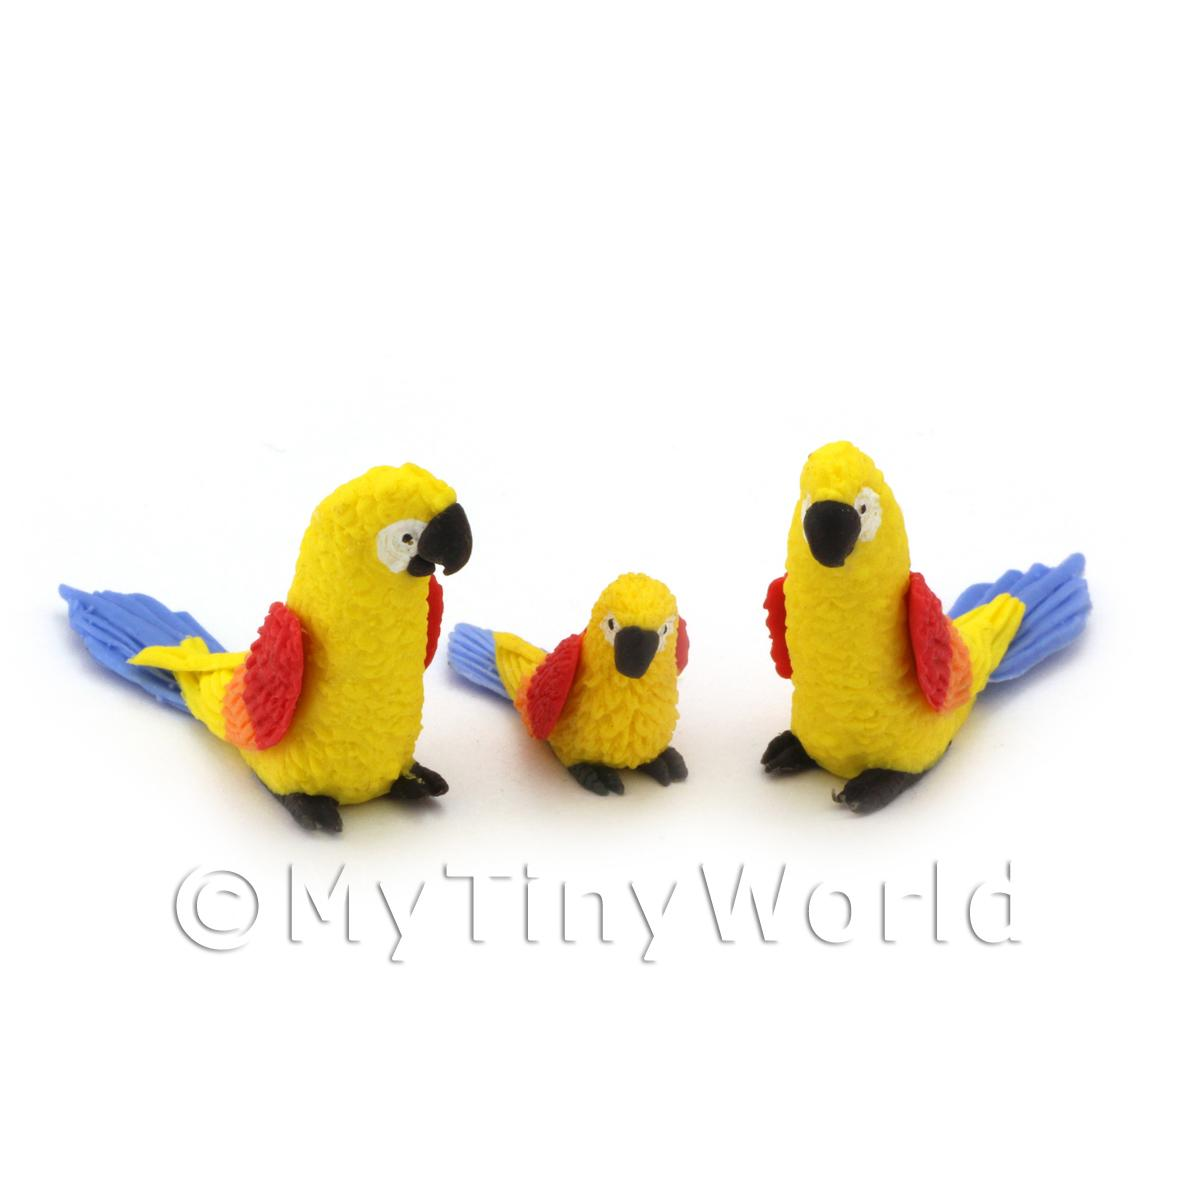 3 Yellow Dolls House Miniature Parrots with Multi-Coloured Wings